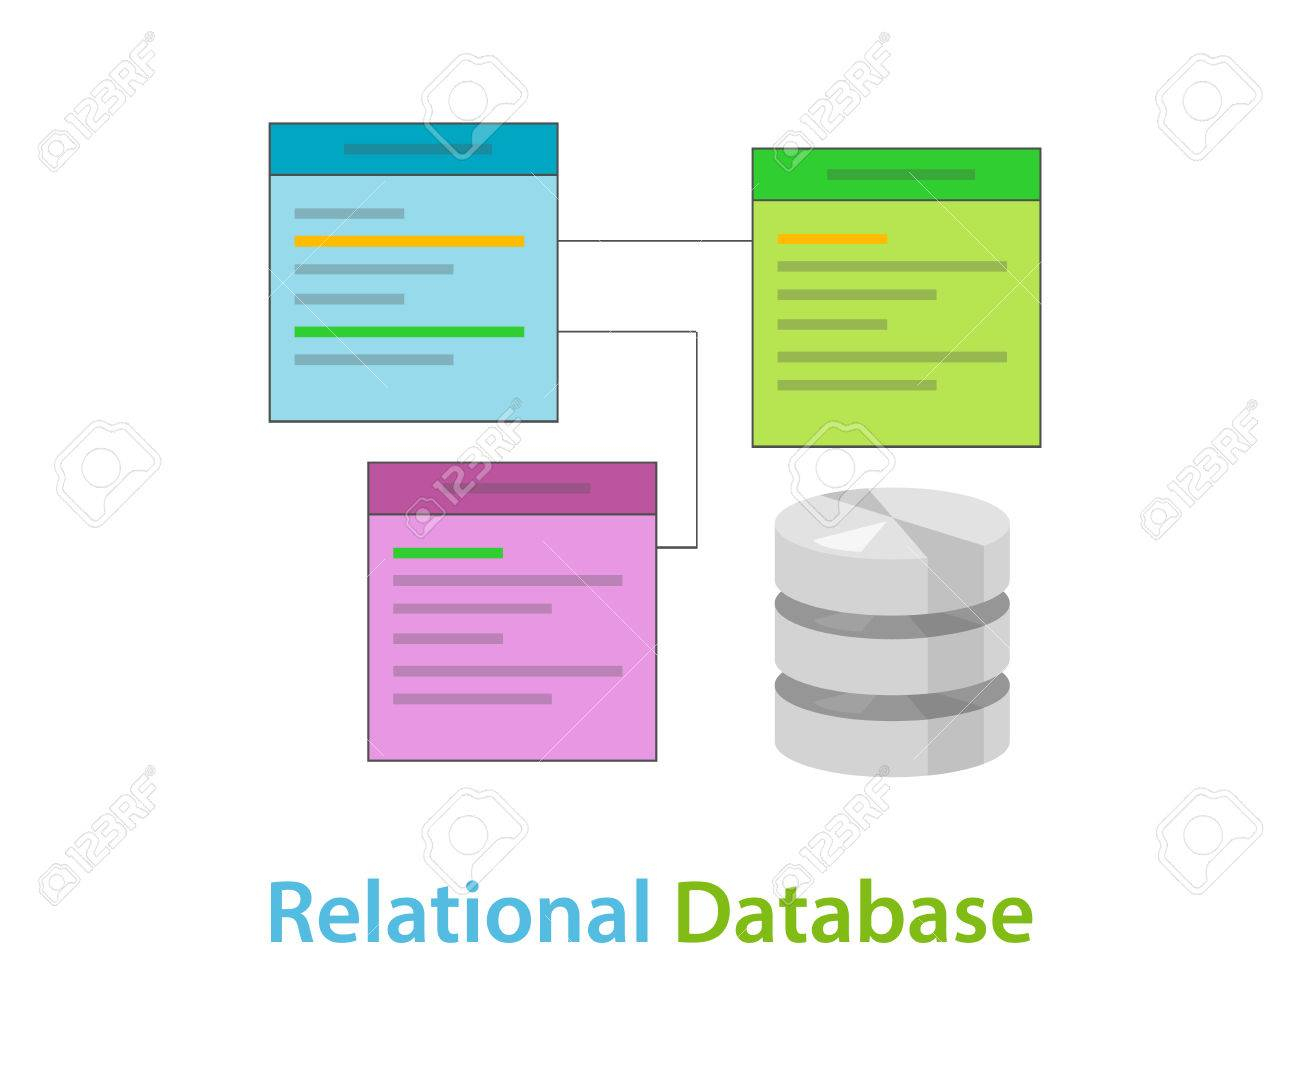 Relational Database Data Table Related Symbol Vector Illustration.. with regard to Relational Database Symbols